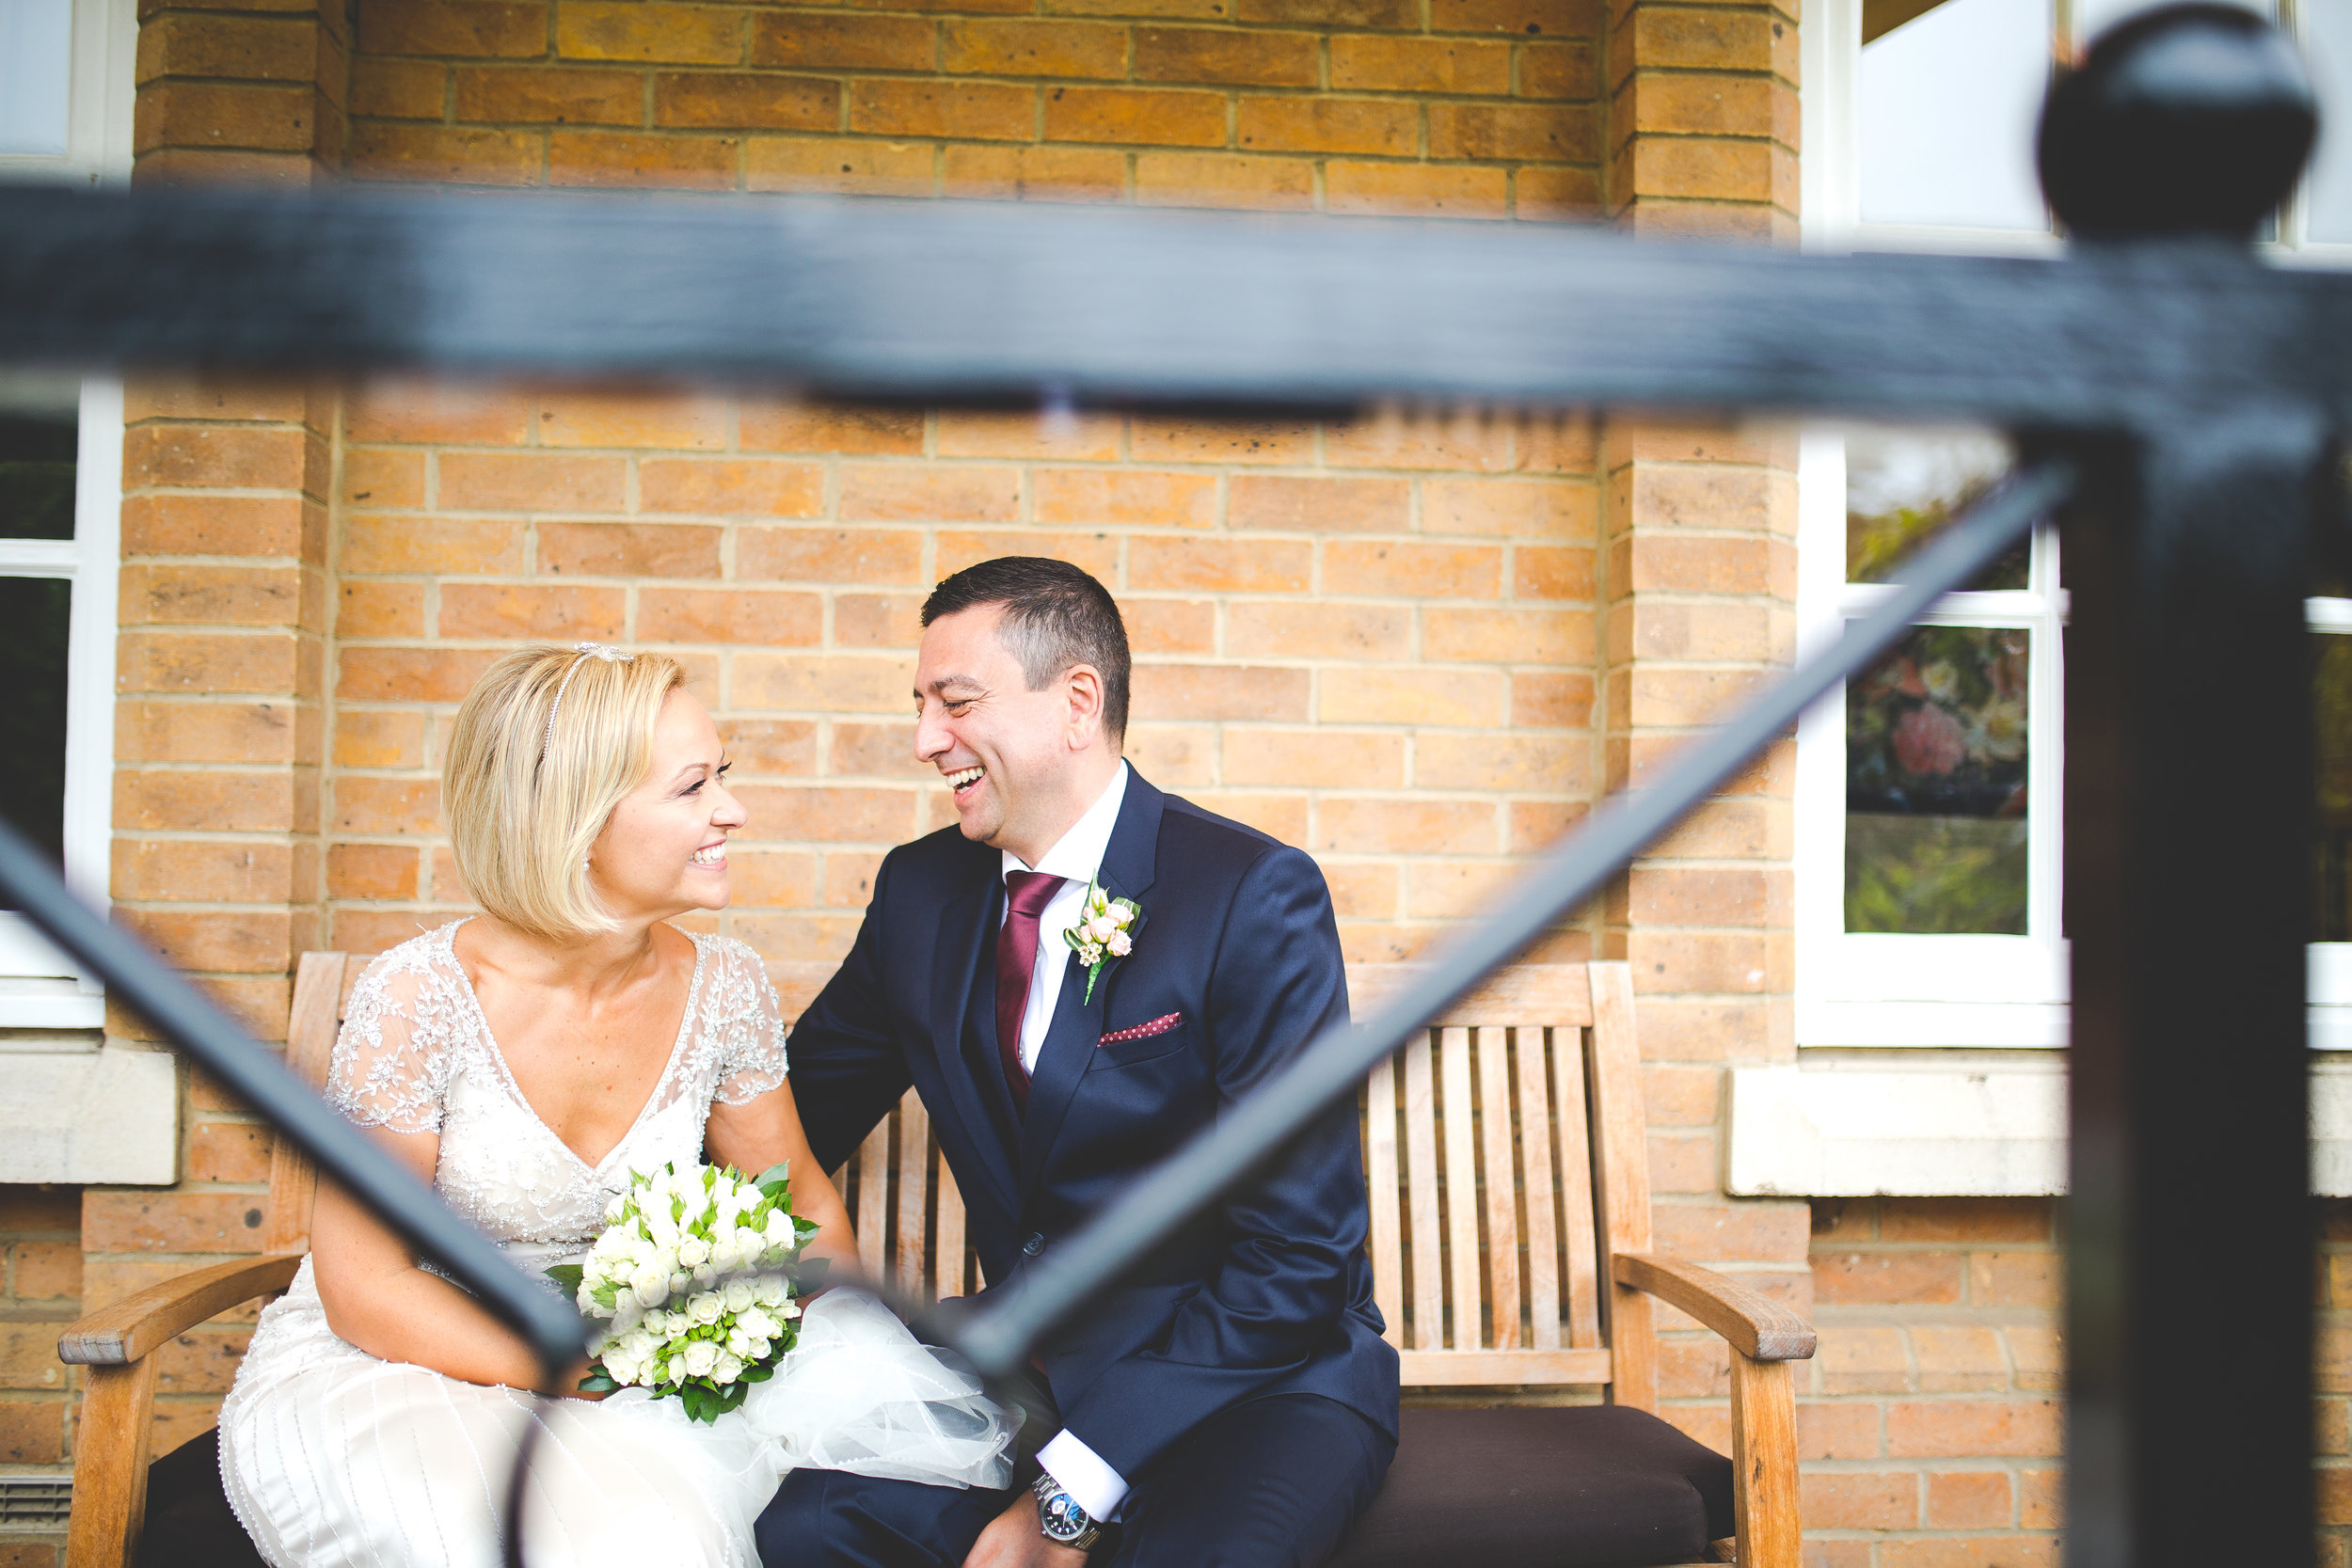 Gorgeous simple and elegant wedding at Bedford Lodge Newmarket